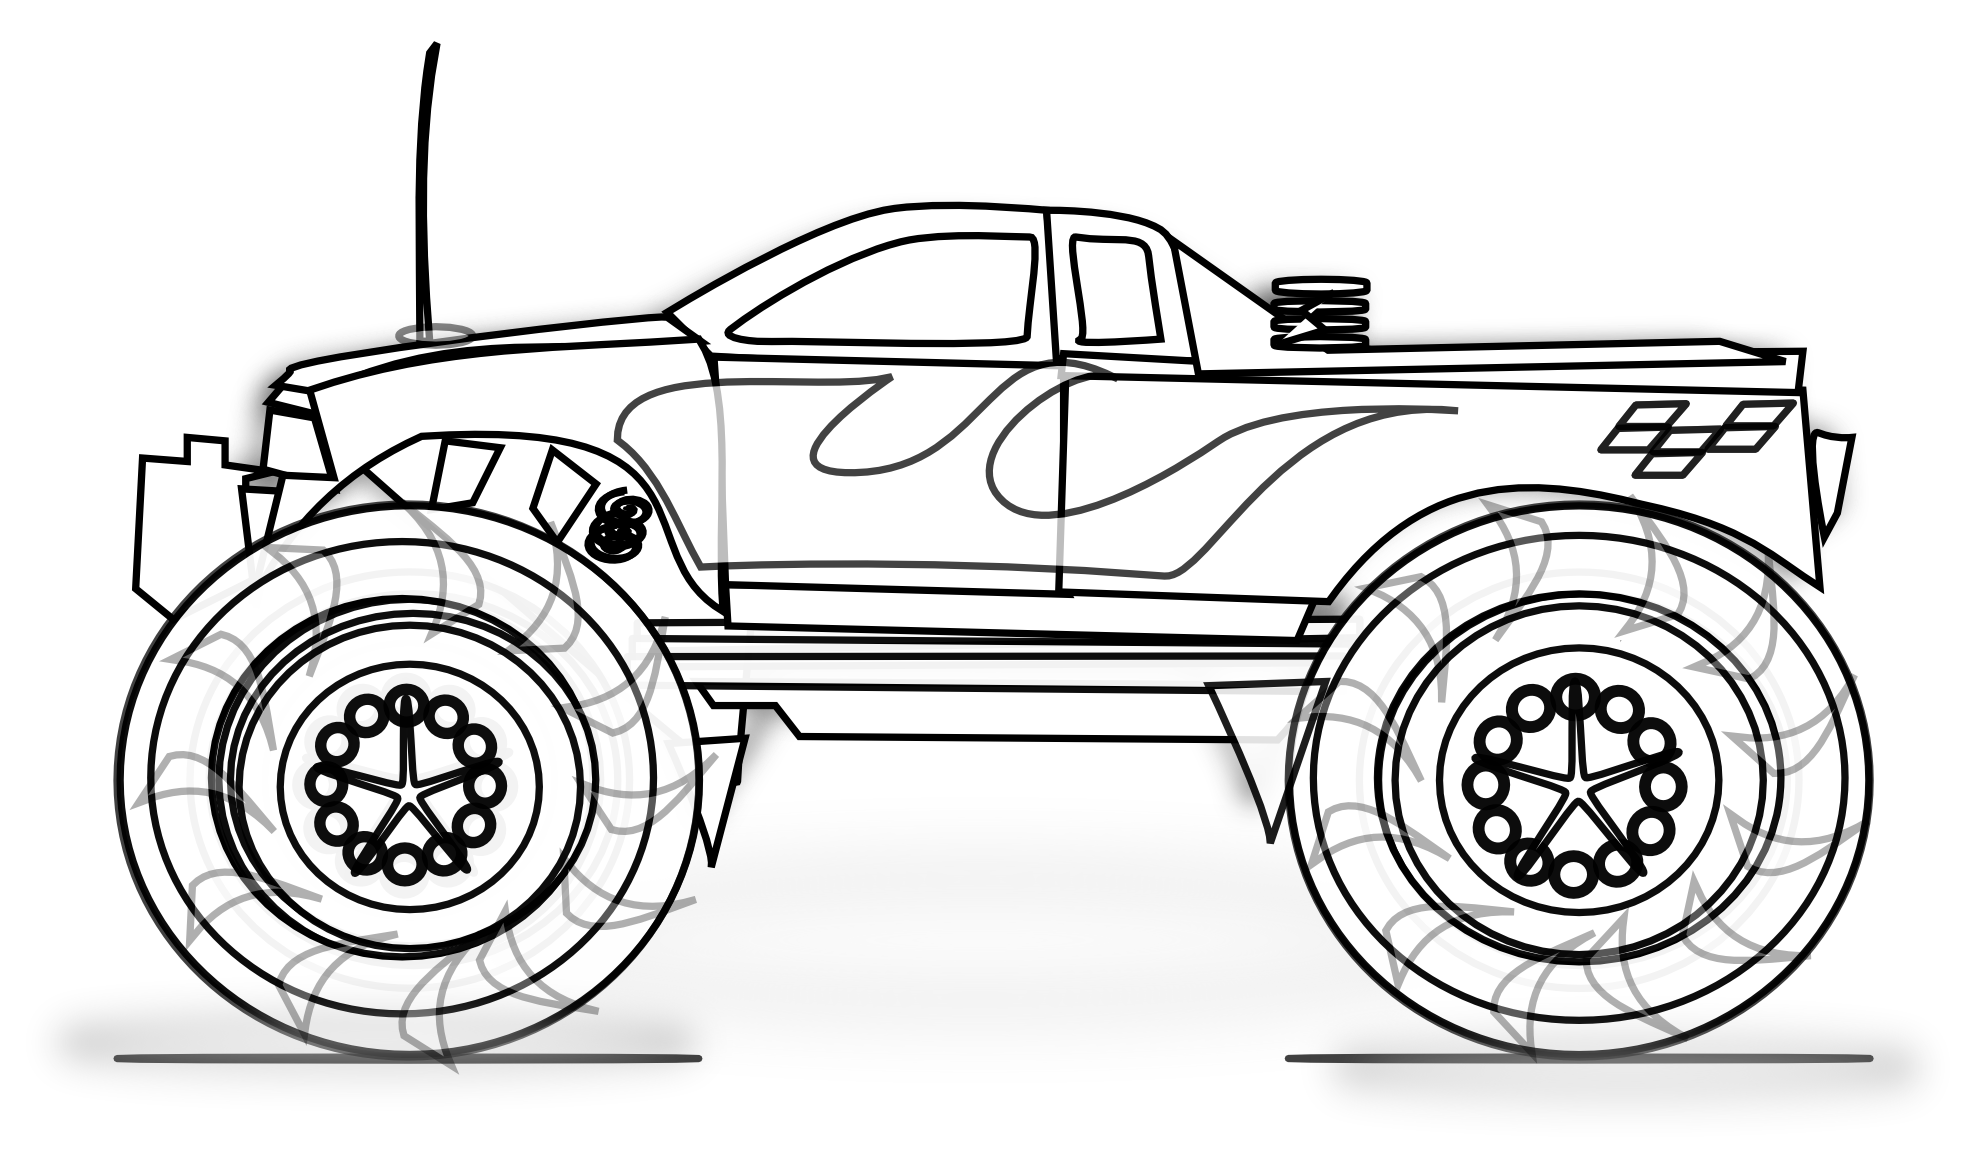 monster truck printable coloring pages - Printable Coloring Pages Kids